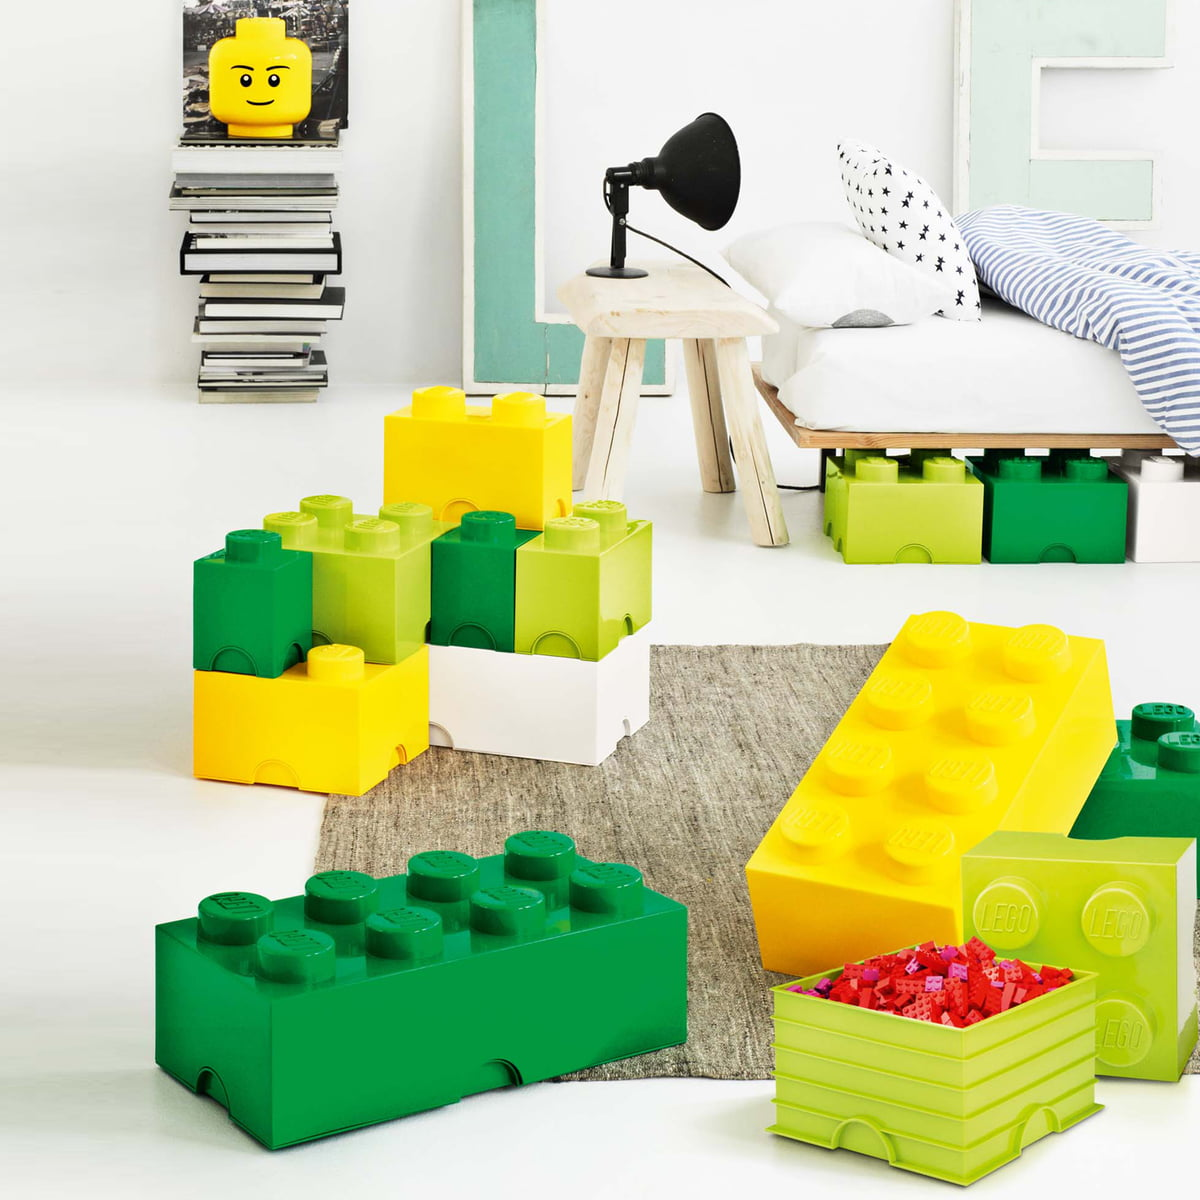 LEGO Storage by Room Copenhagen